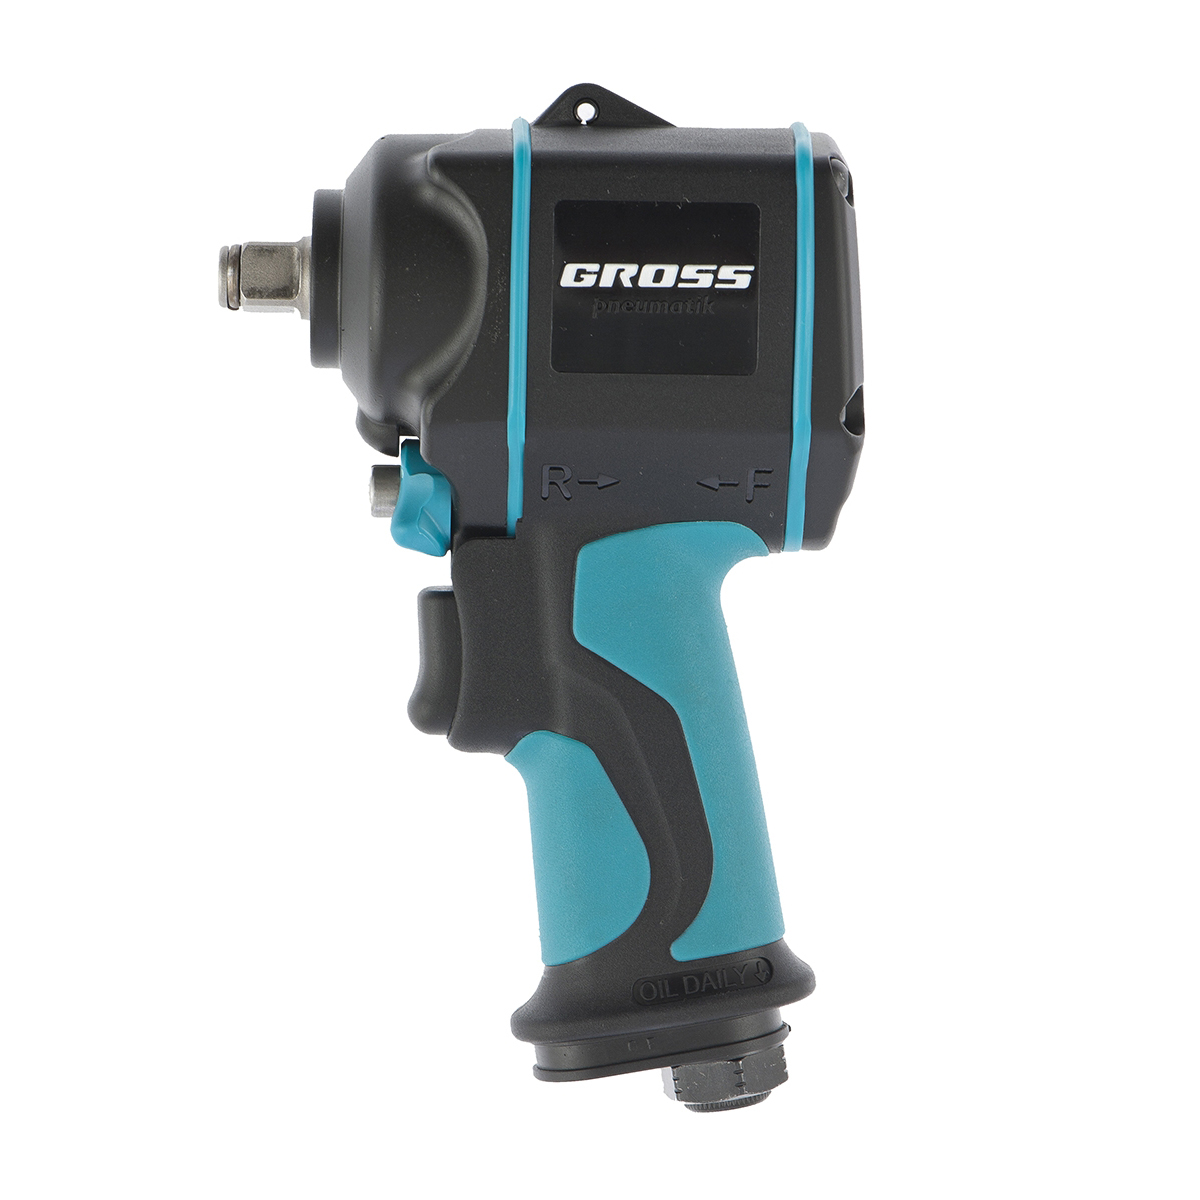 Pneumatic impact wrench GROSS 57440 impact wrench